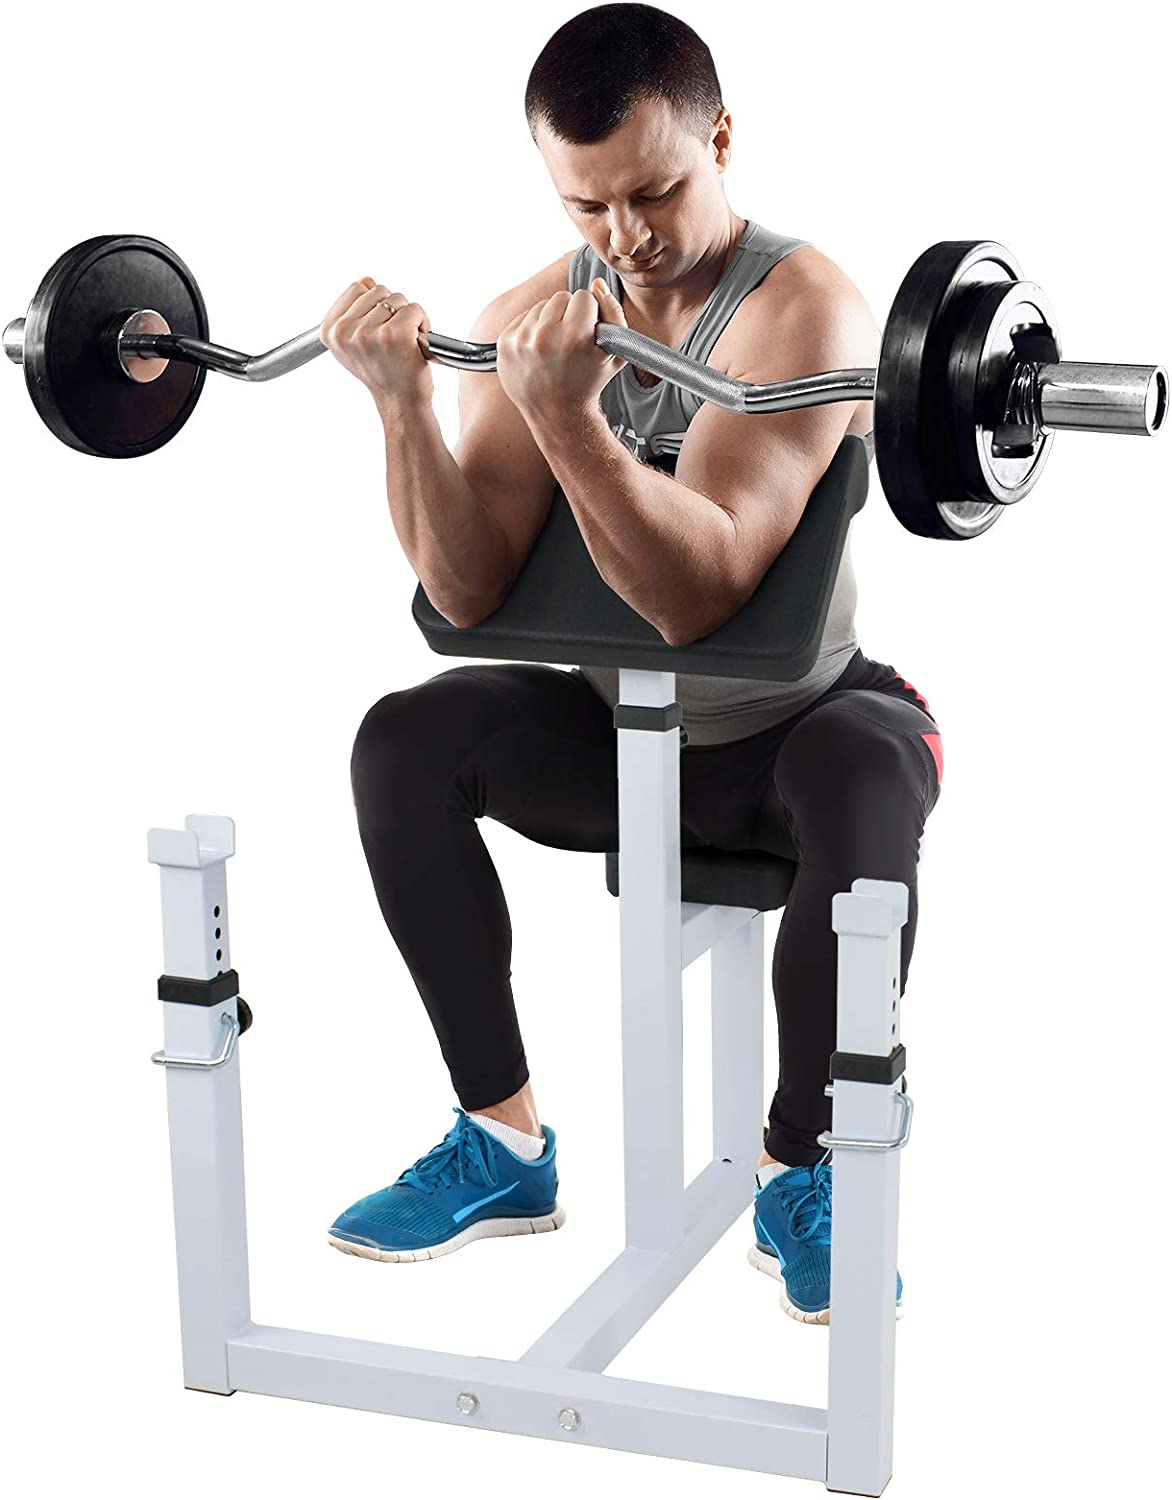 Zeny Preacher Curl Weight Bench Review